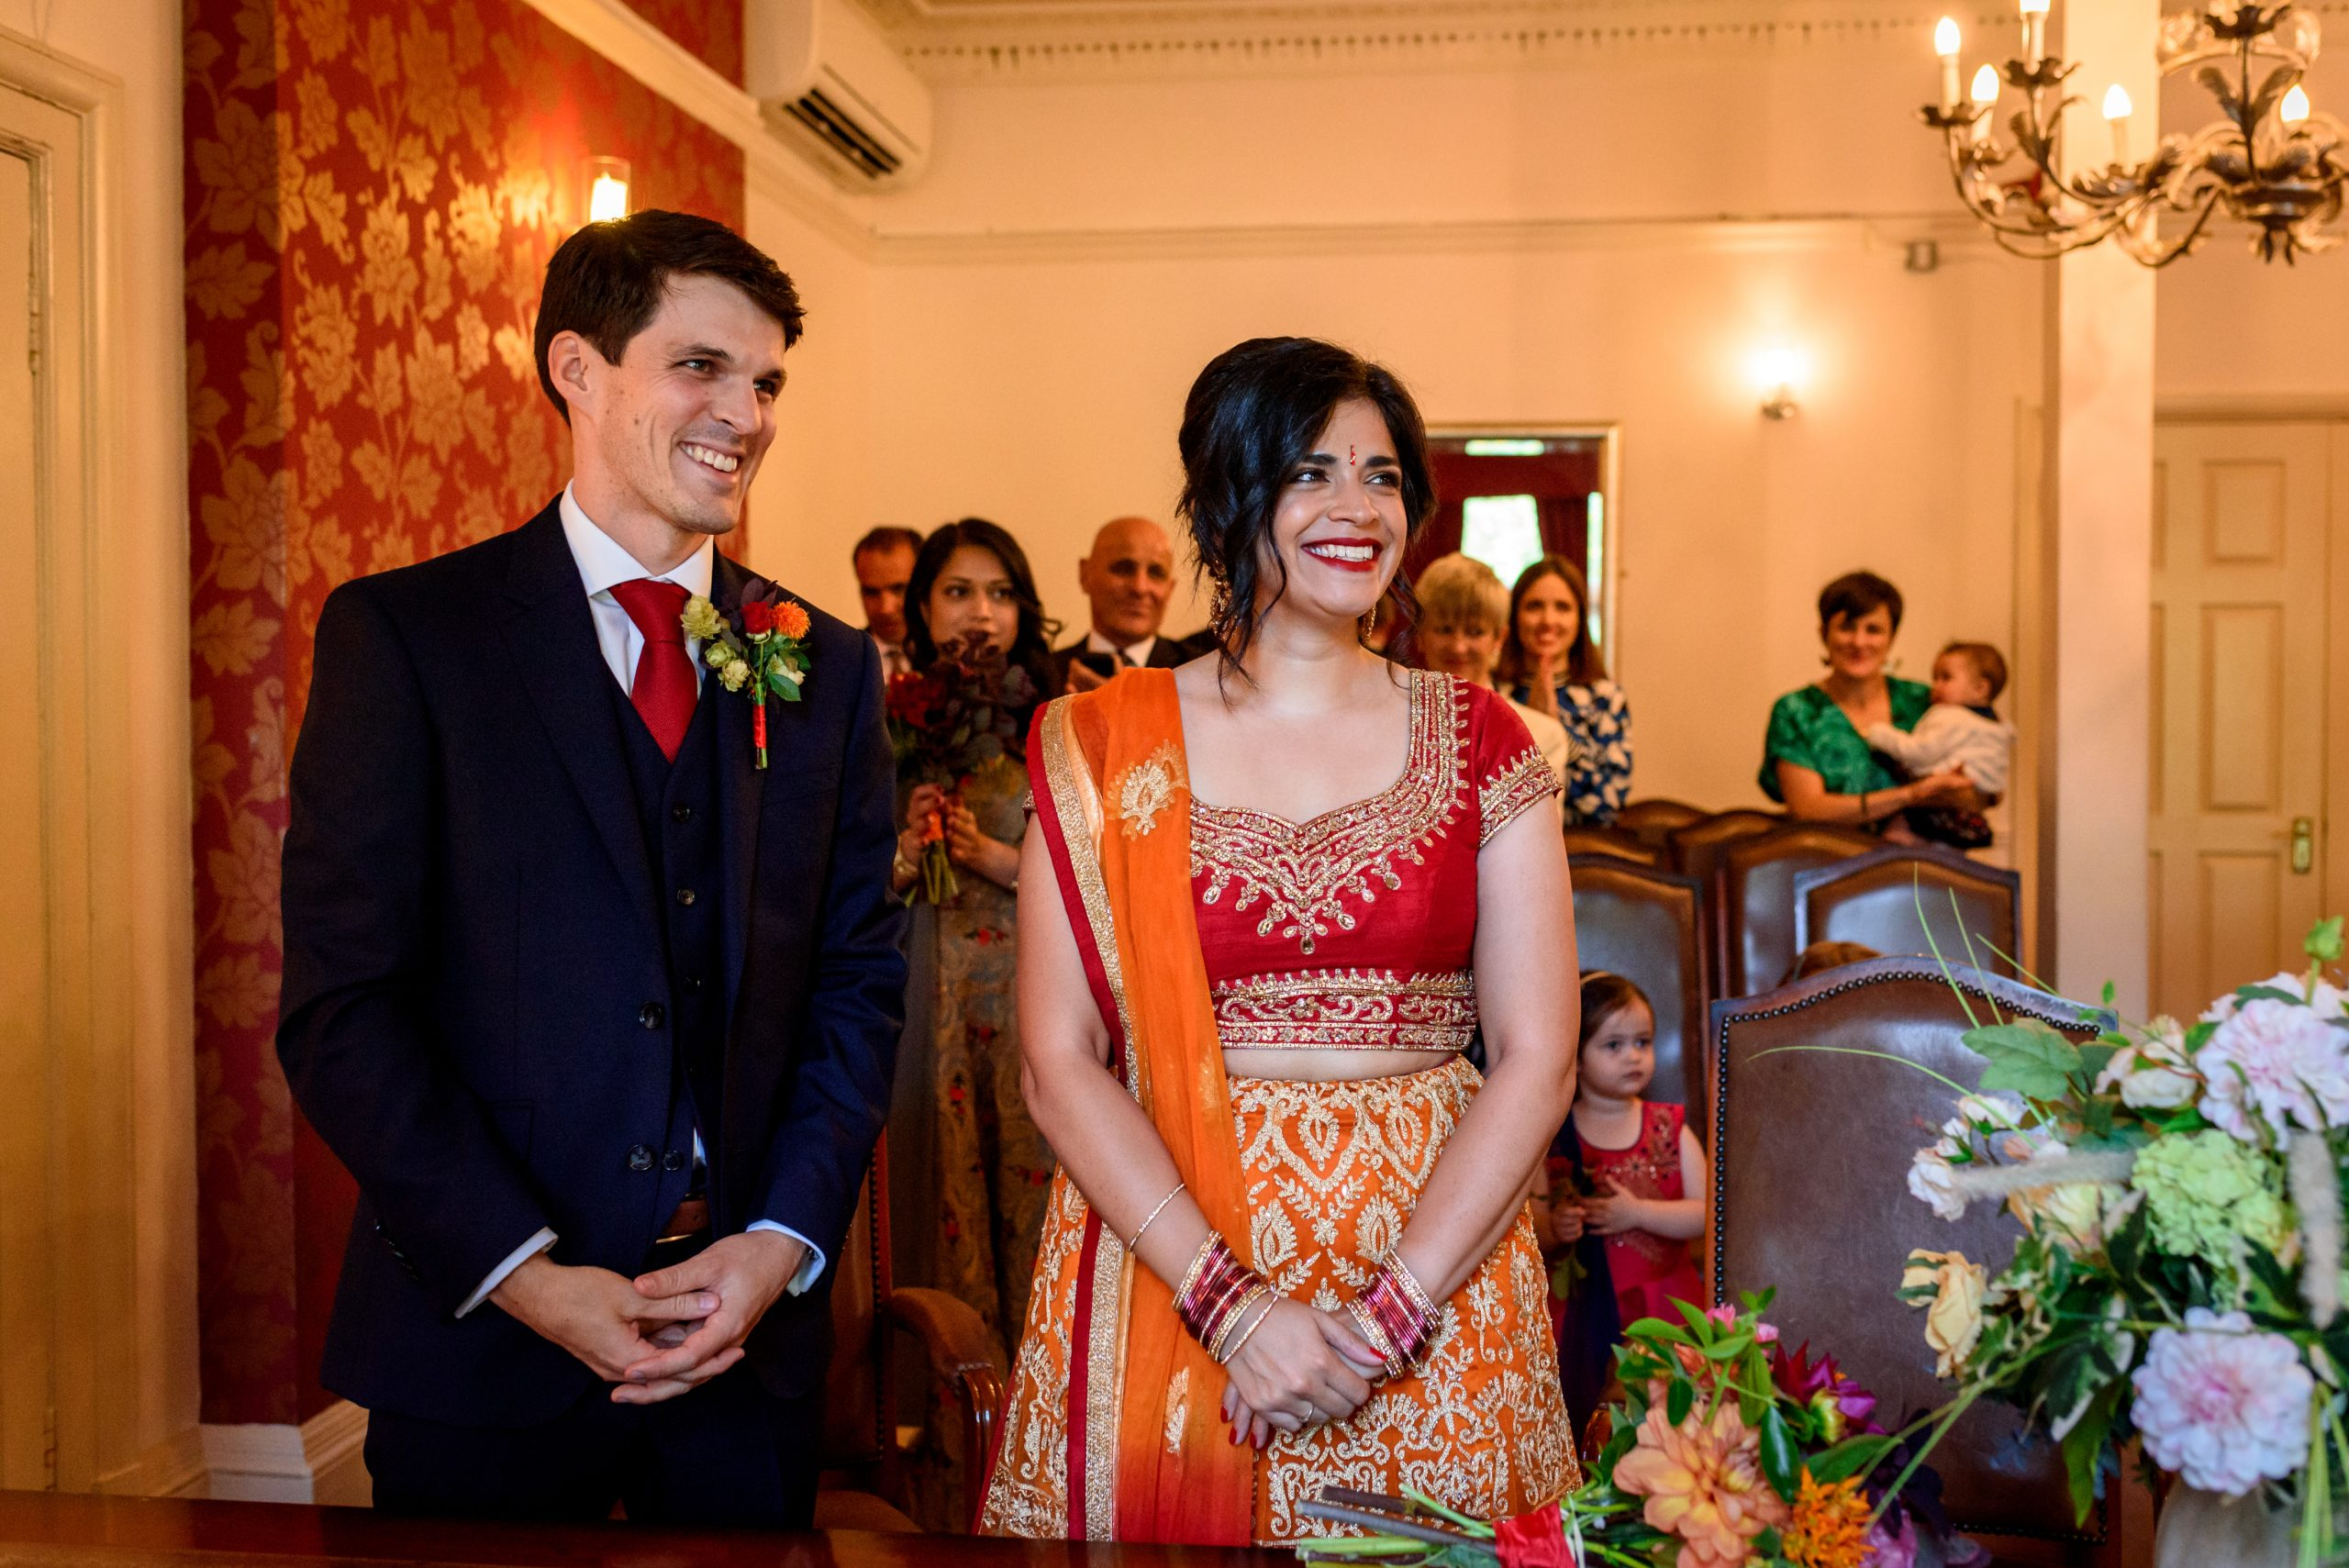 wedding couple at ceremony at Southwark Registry Office in London